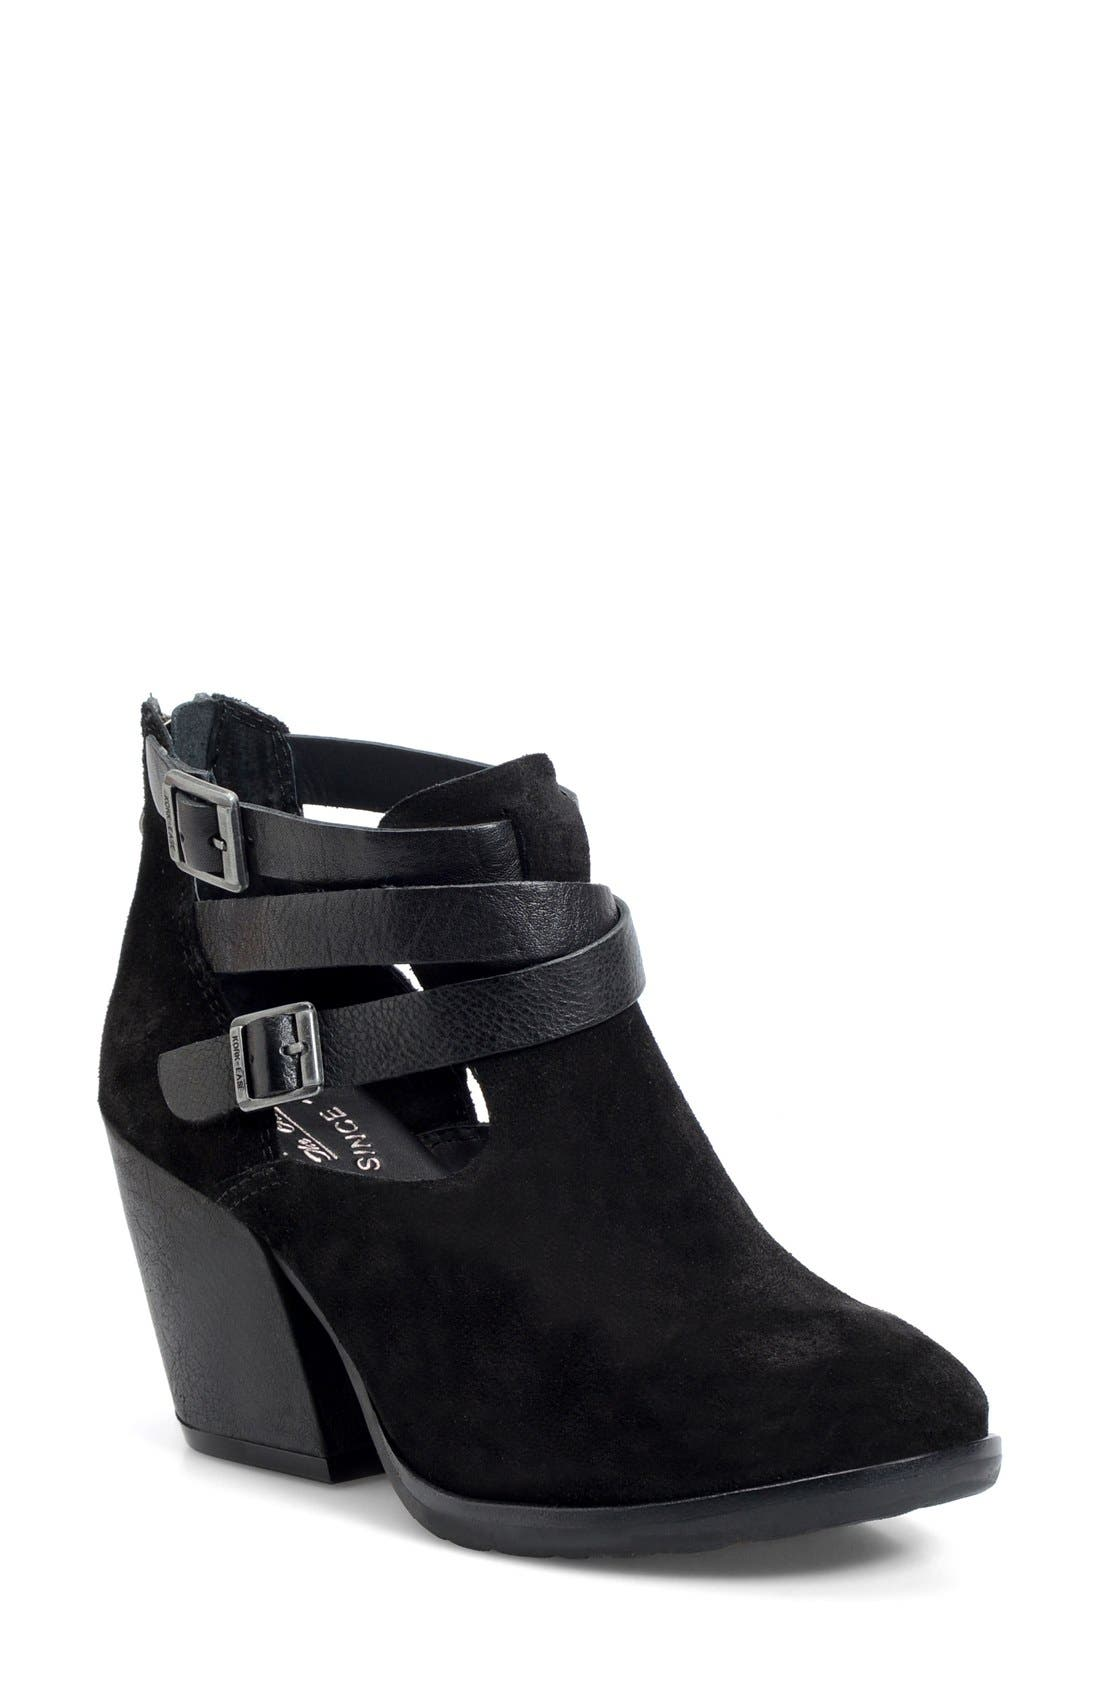 'Stina' Leather Bootie,                             Main thumbnail 1, color,                             001